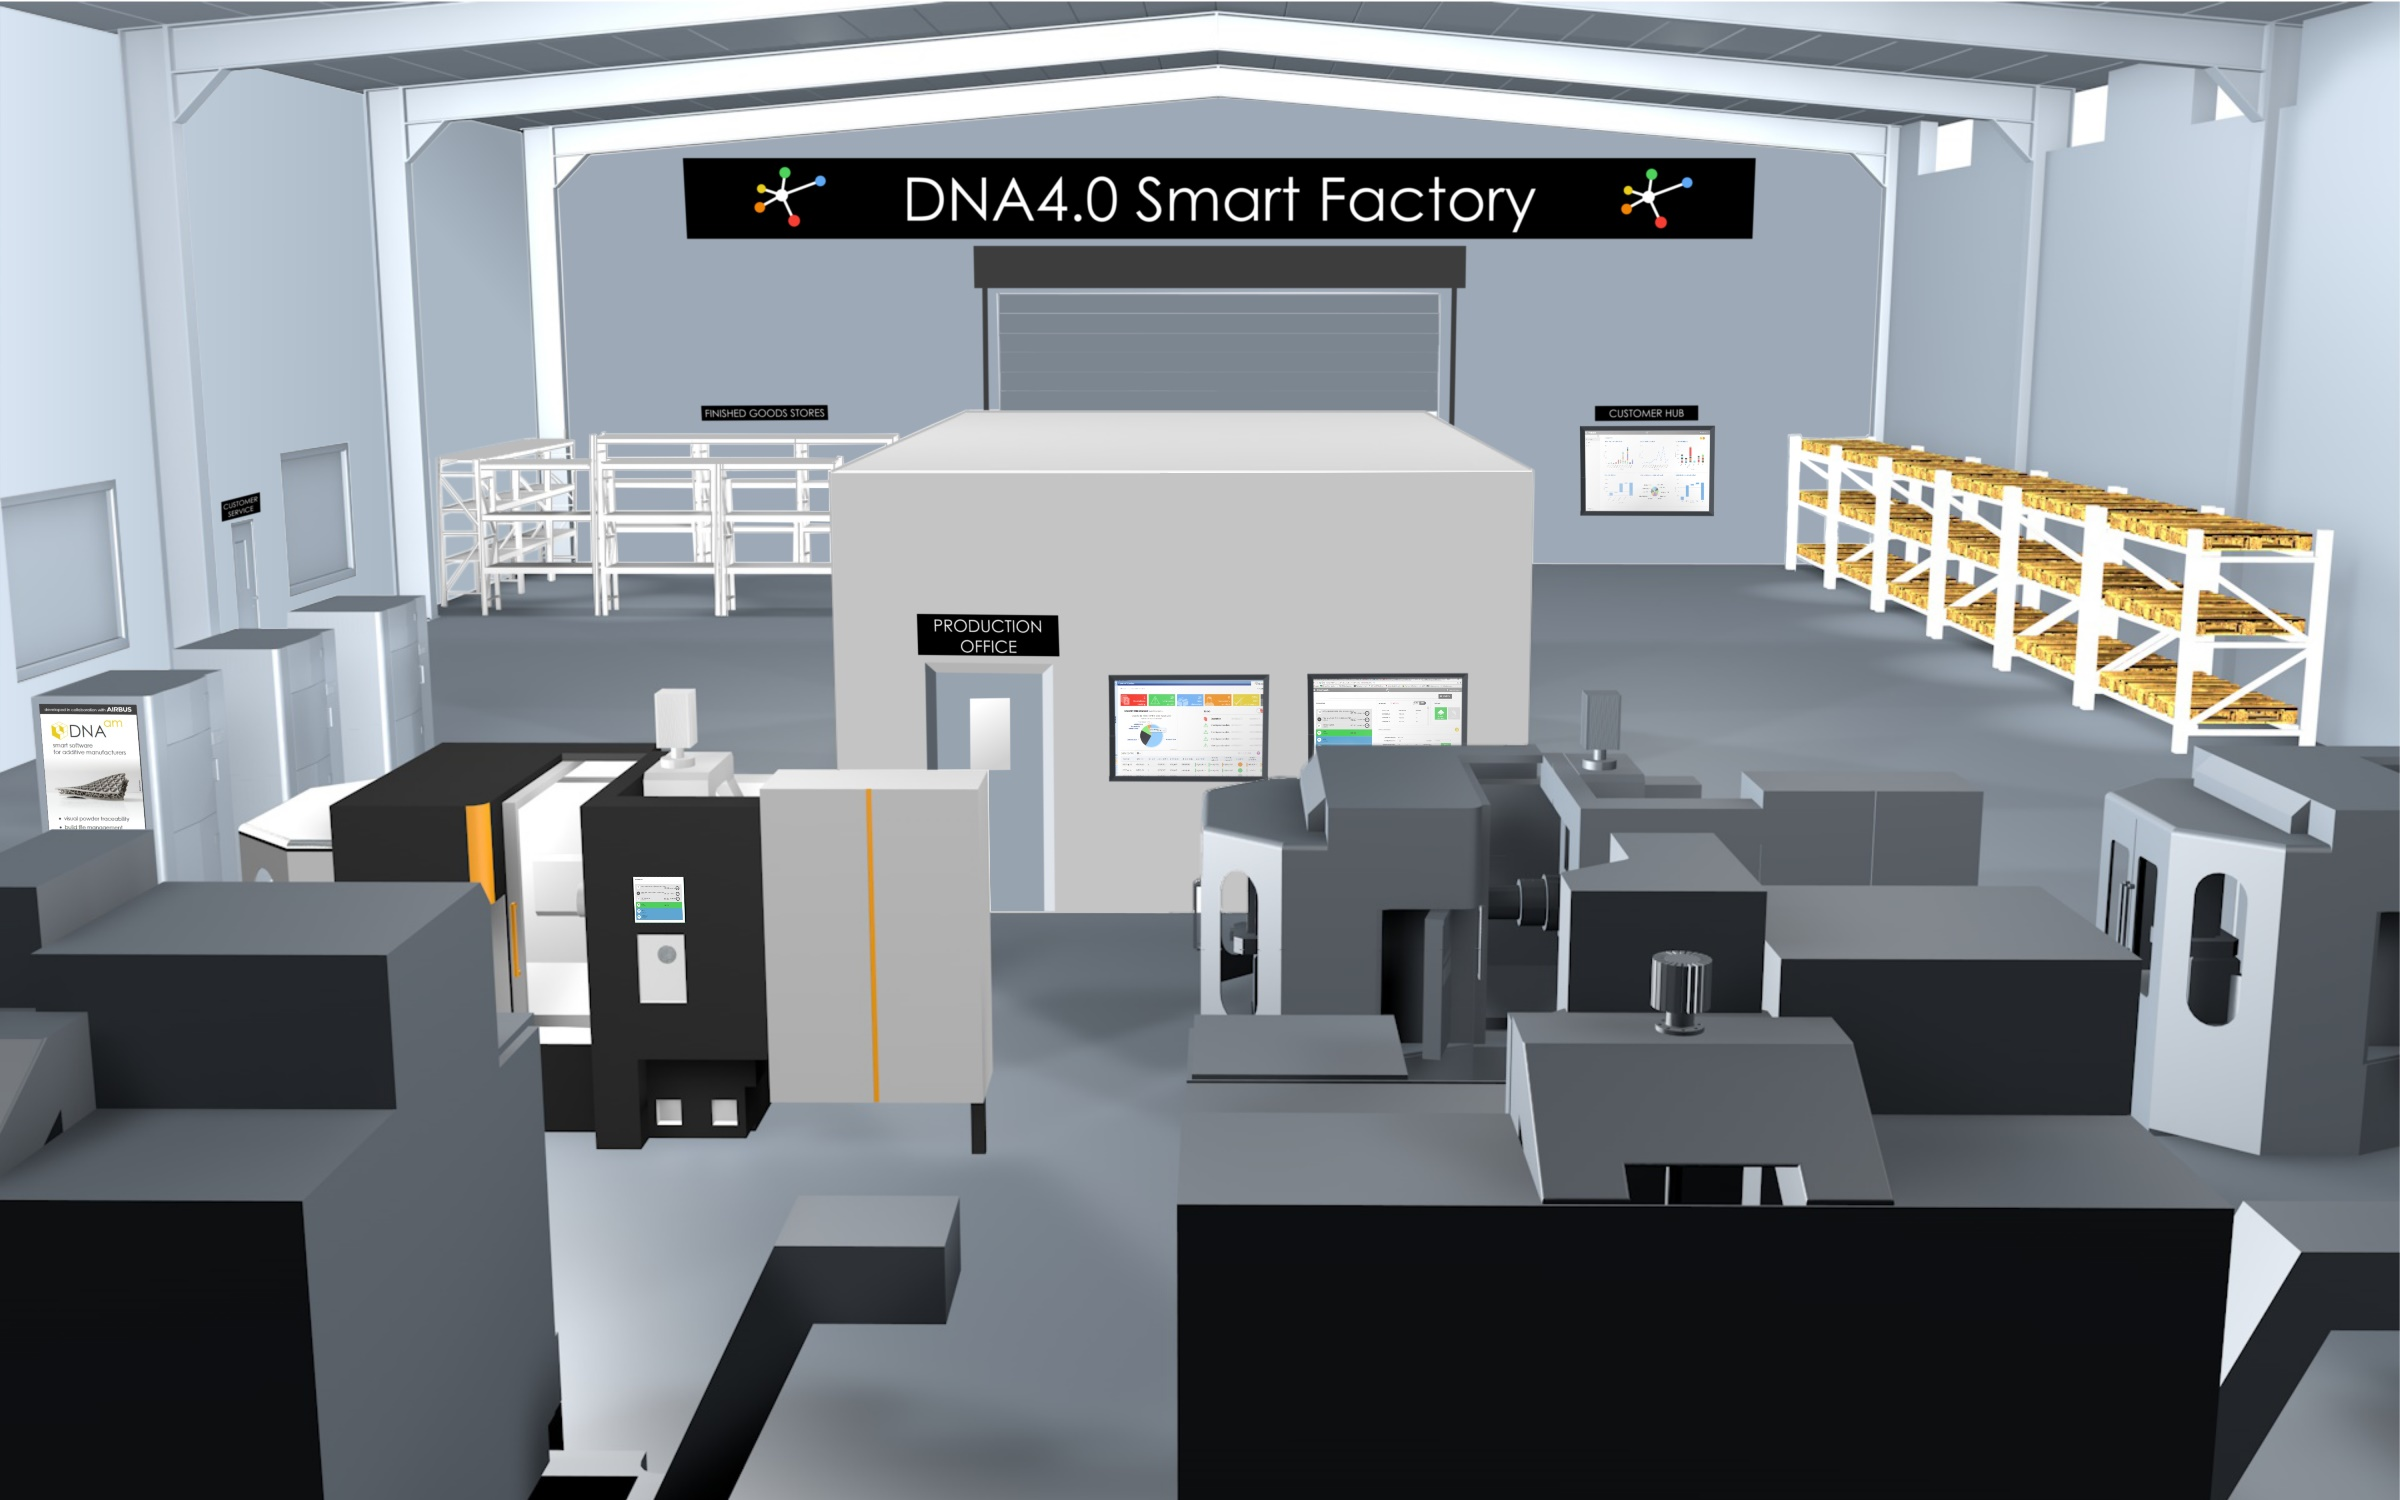 Immersive digital rendering of Industry 4.0 environment